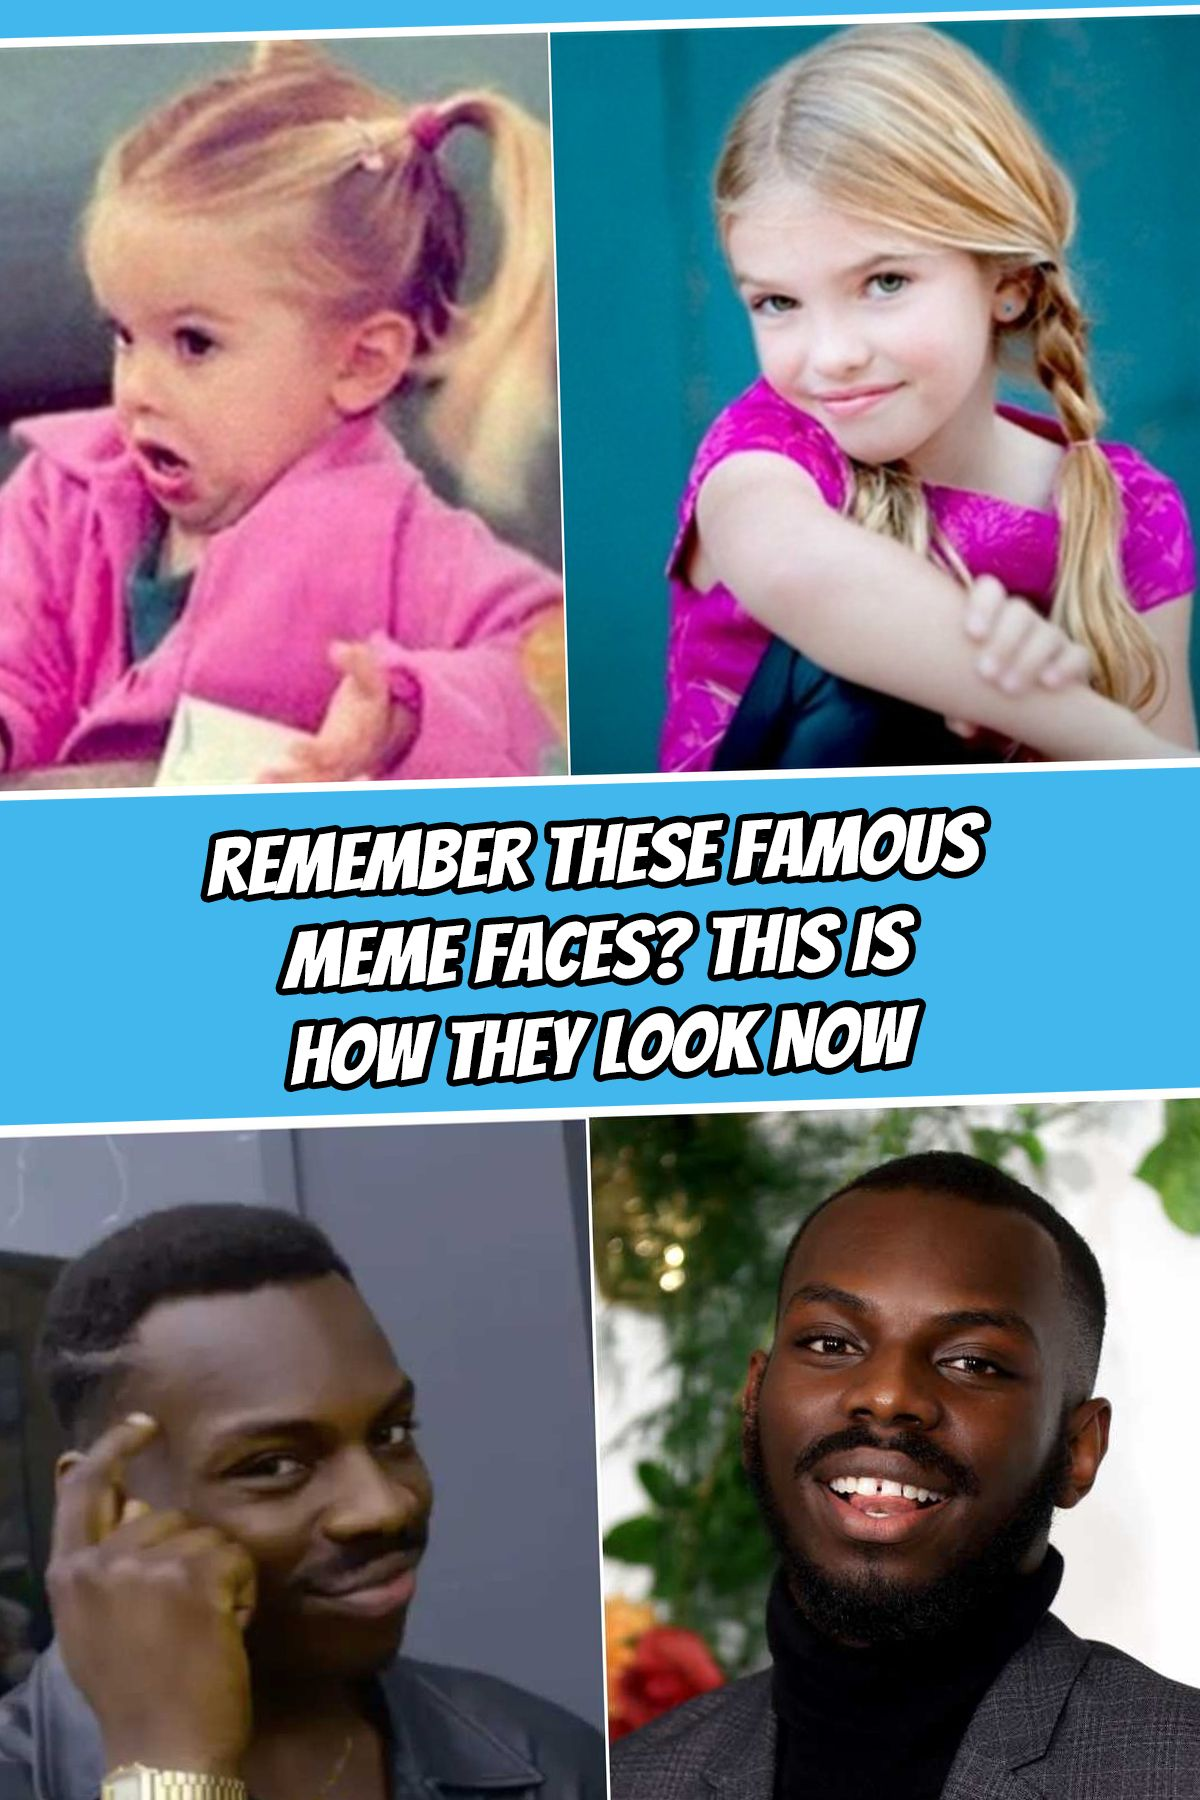 Remember These Famous Meme Faces This Is How They Look Now Meme Faces Funny Friend Memes Famous Memes